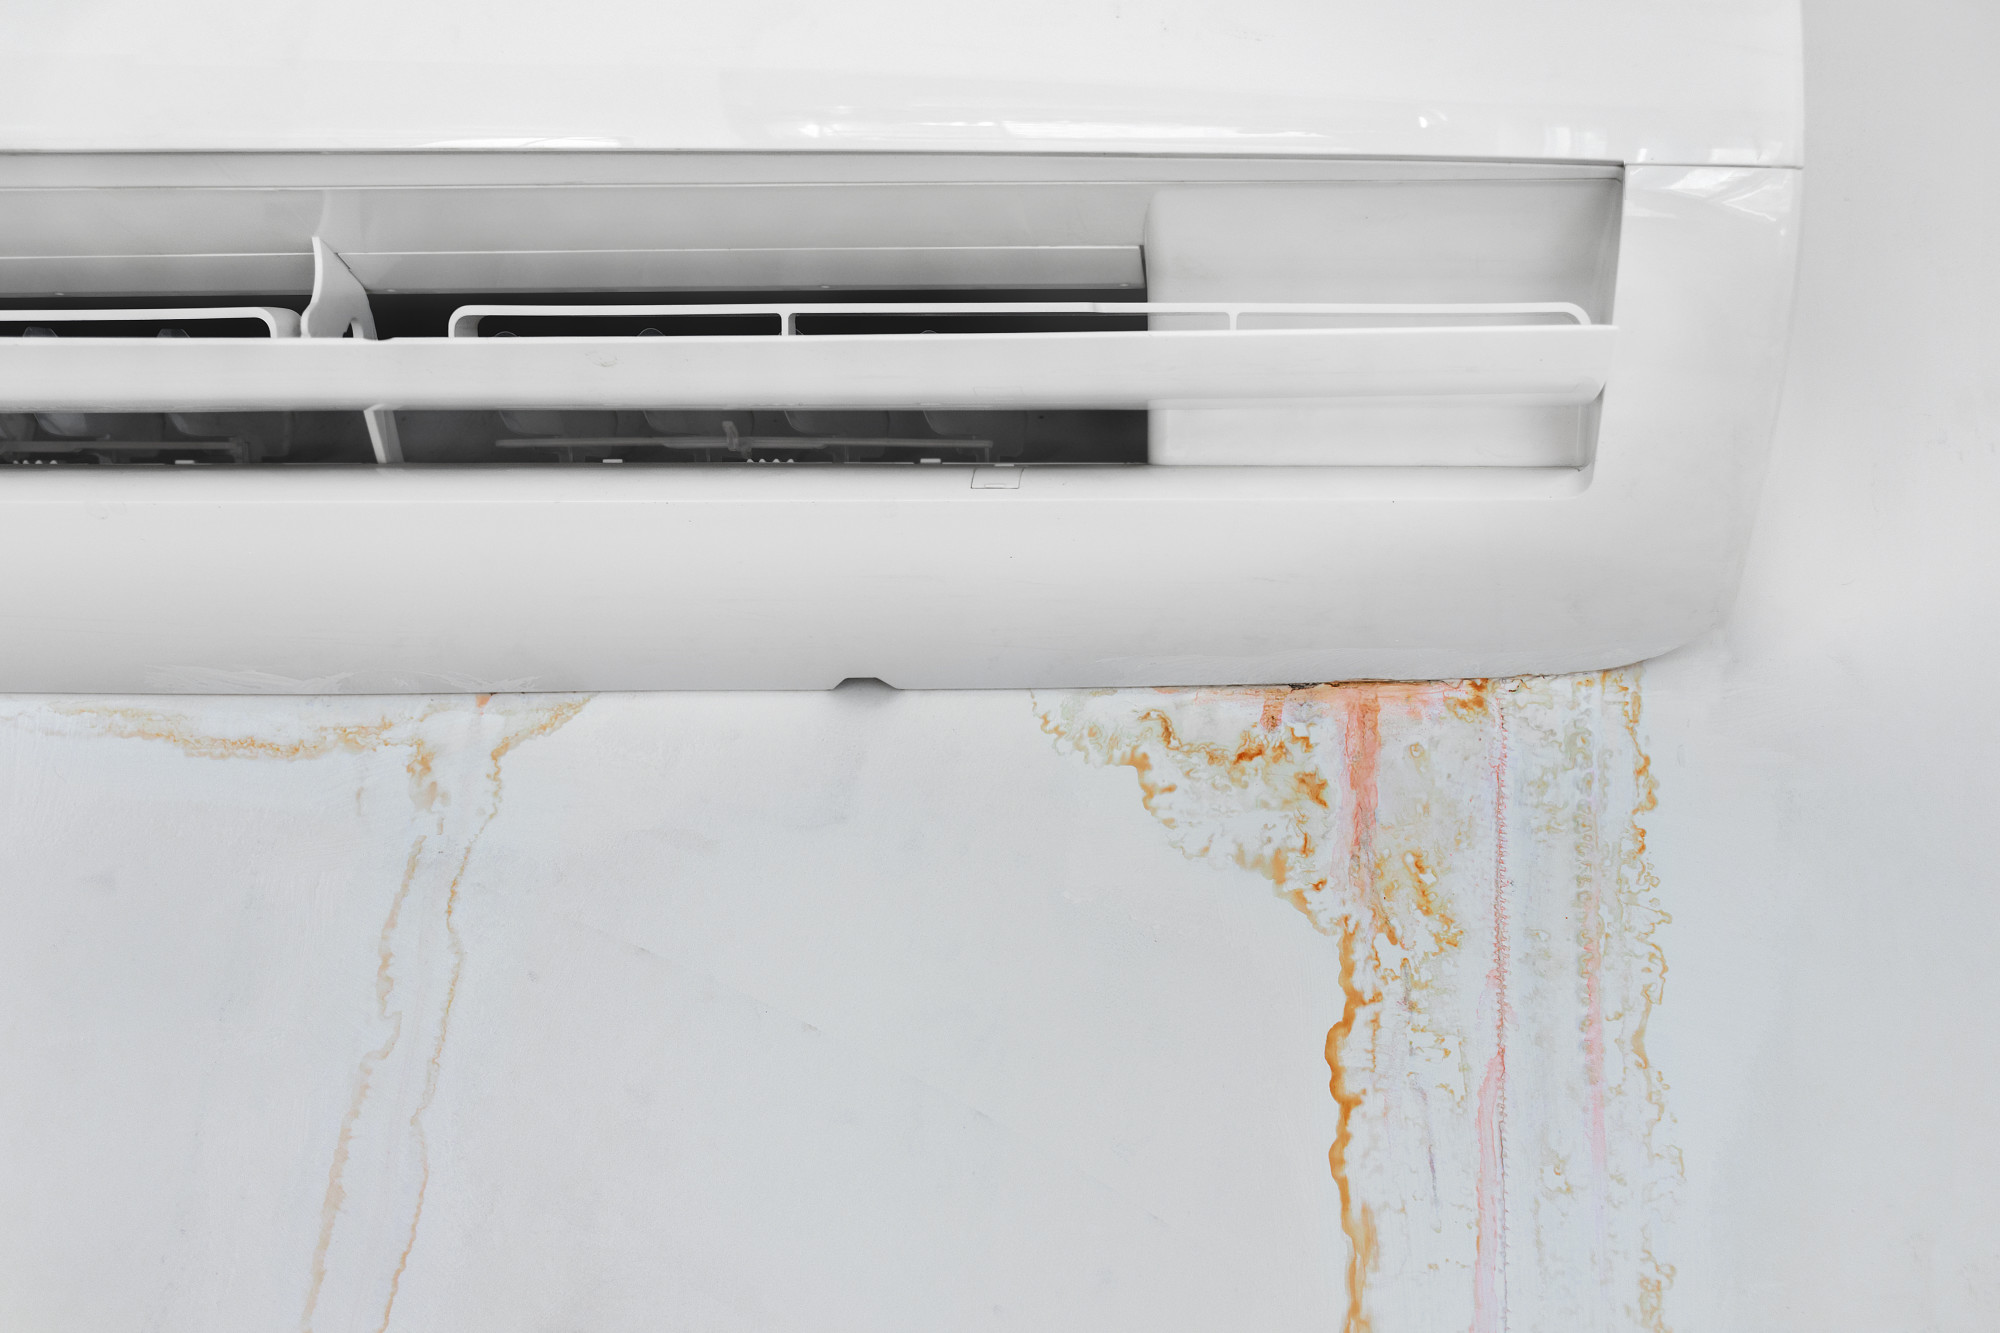 air conditioner is leaking water